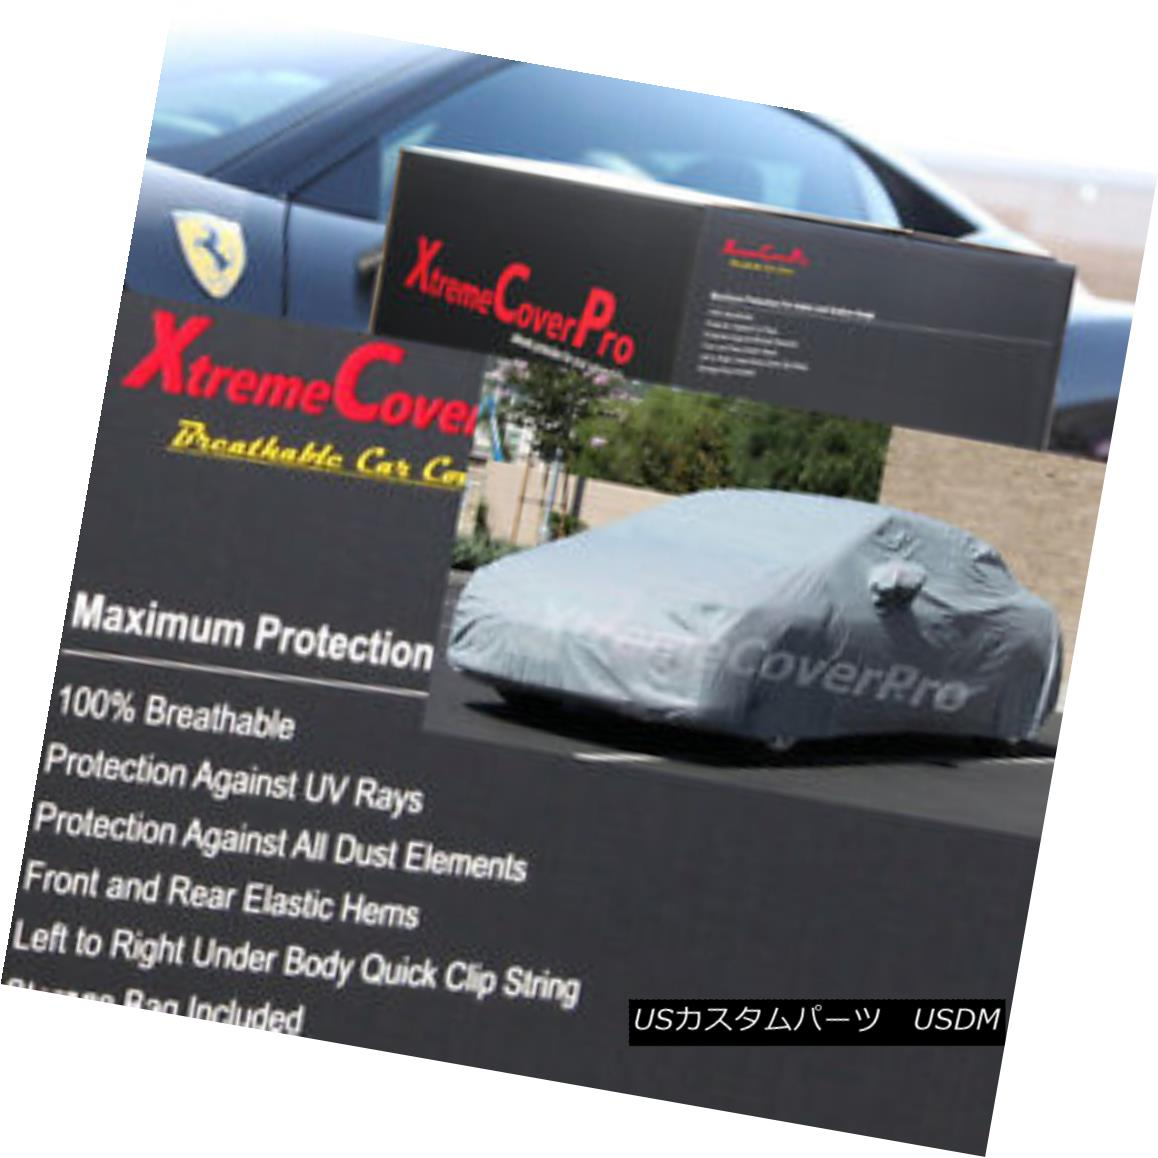 カーカバー 1997 1998 1999 Oldsmobile Cutlass Breathable Car Cover w/MirrorPocket 1997年1998年1999年Oldsmobile Cutlass通気性車カバー付き(MirrorPocket)